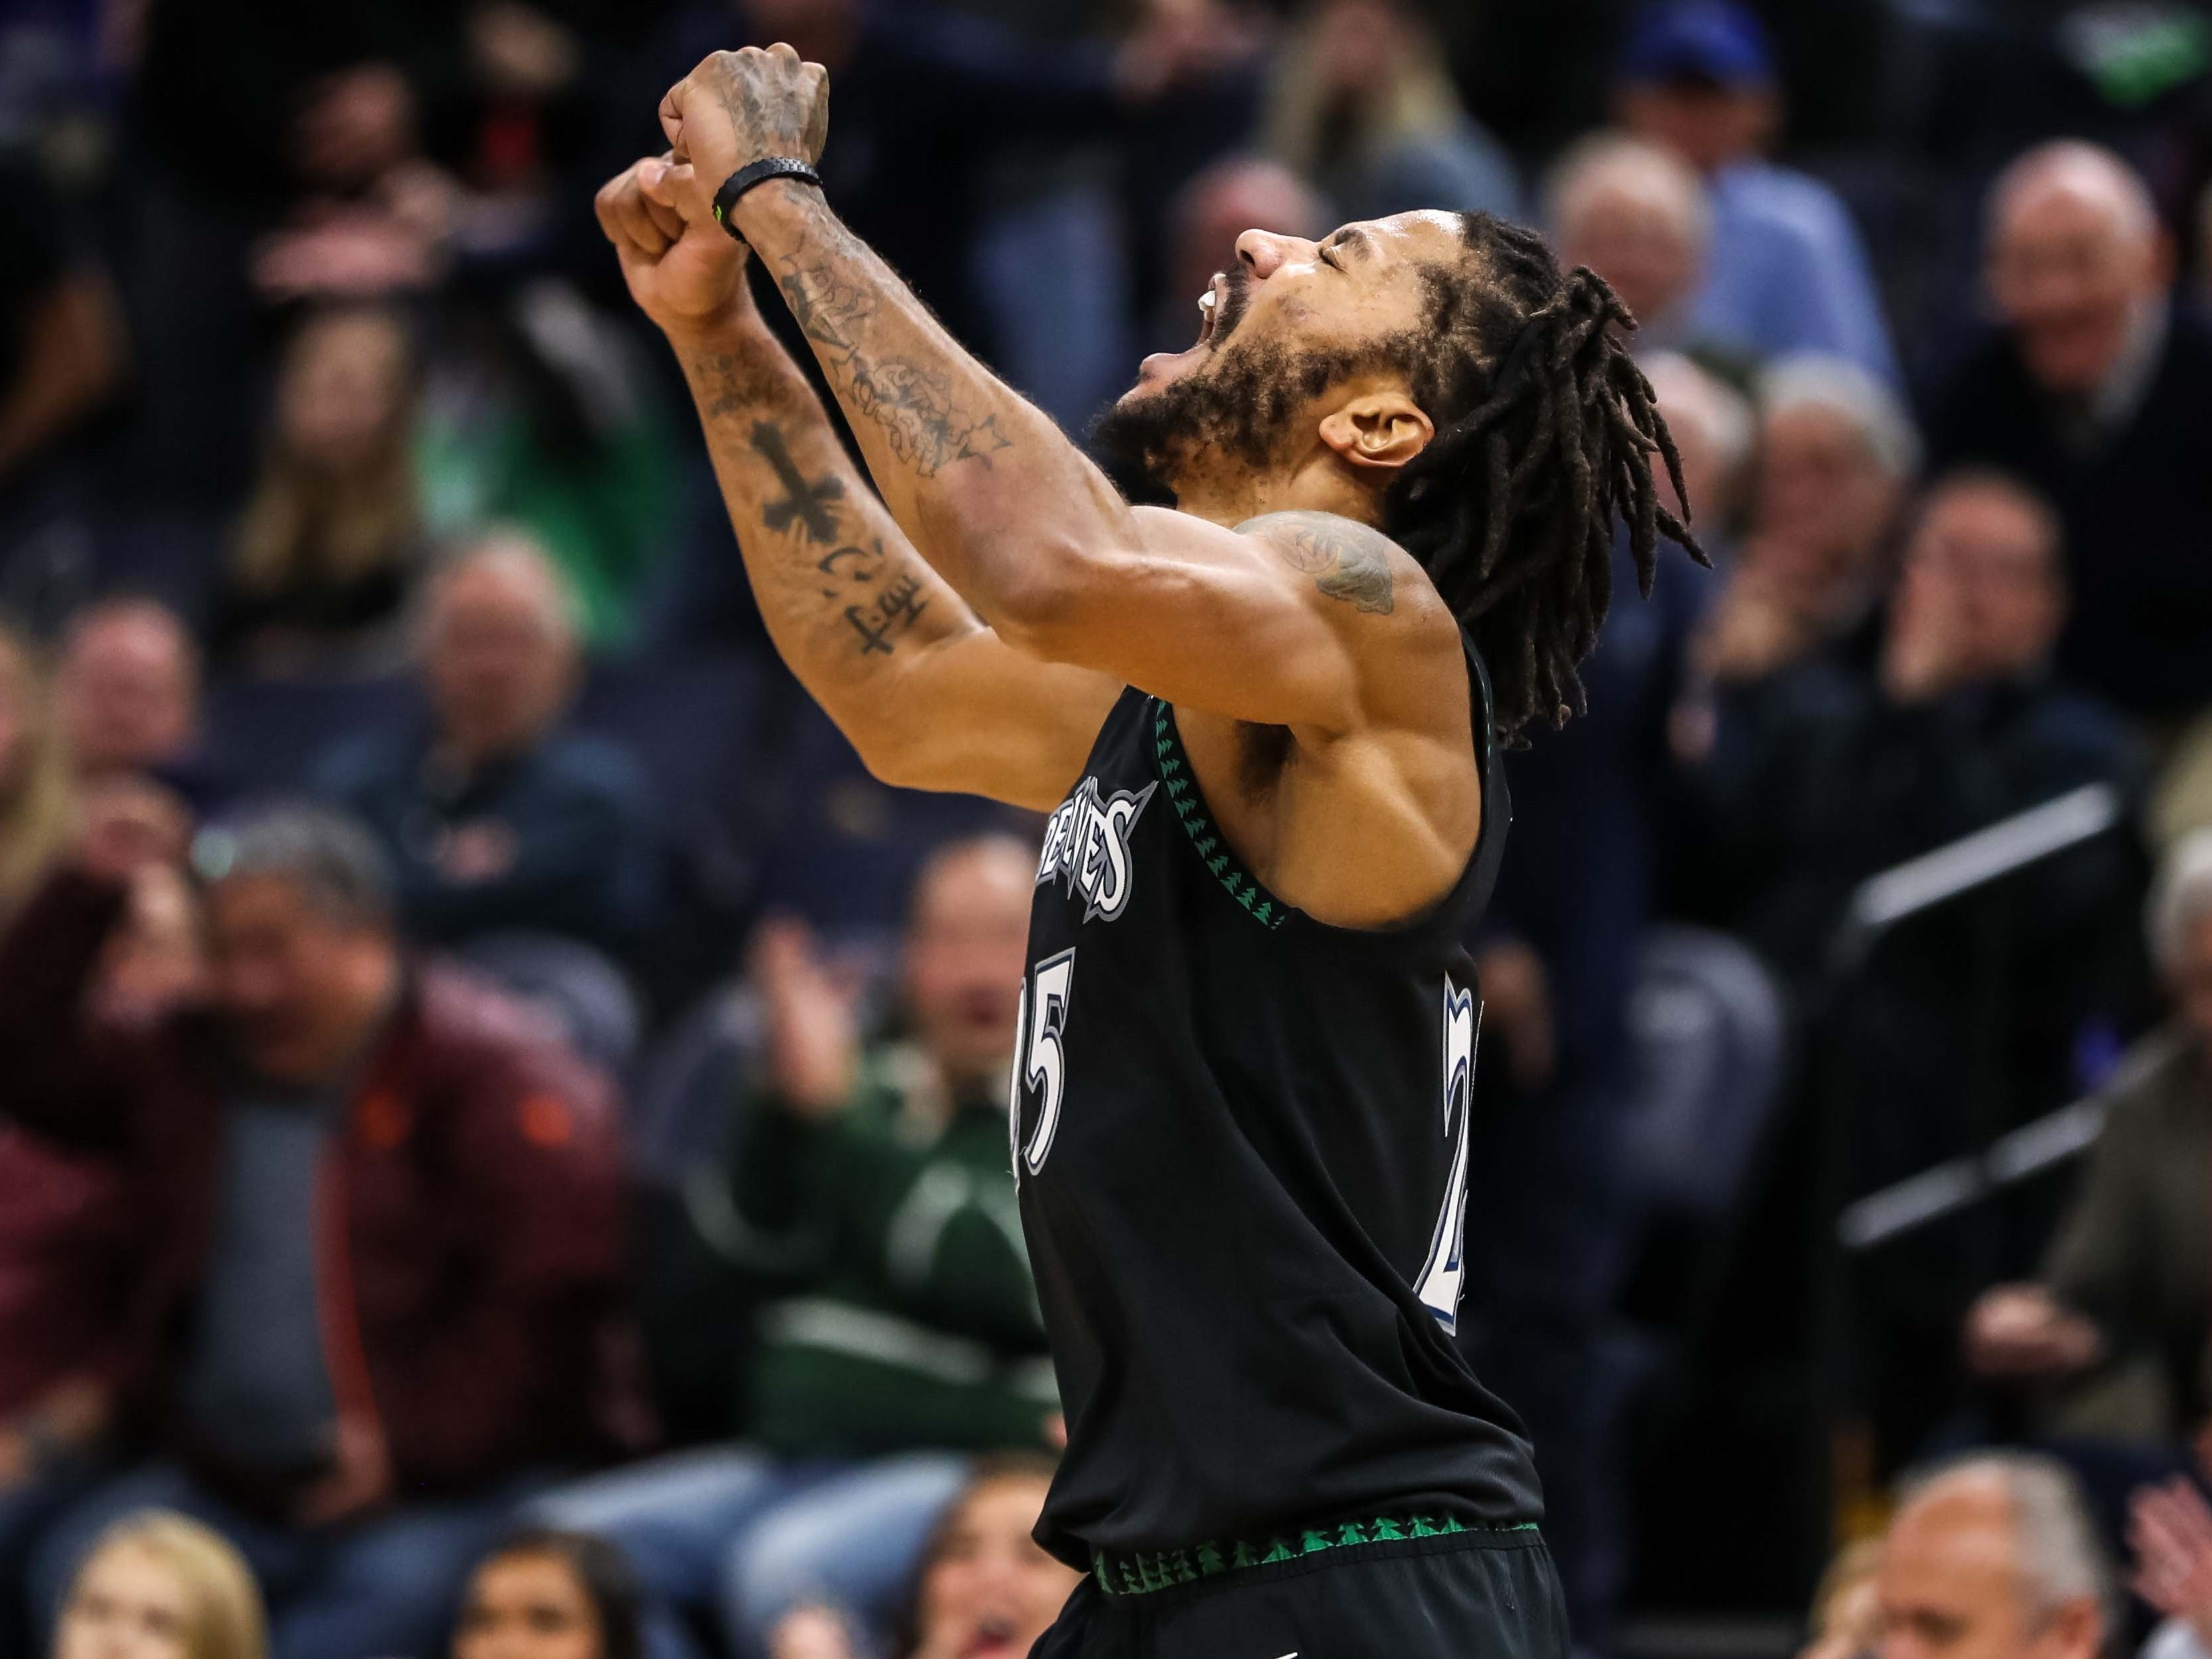 Oct. 31: An emotional Derrick Rose was fired up after pouring in a career-high 50 points in the Timberwolves' win over the Jazz.